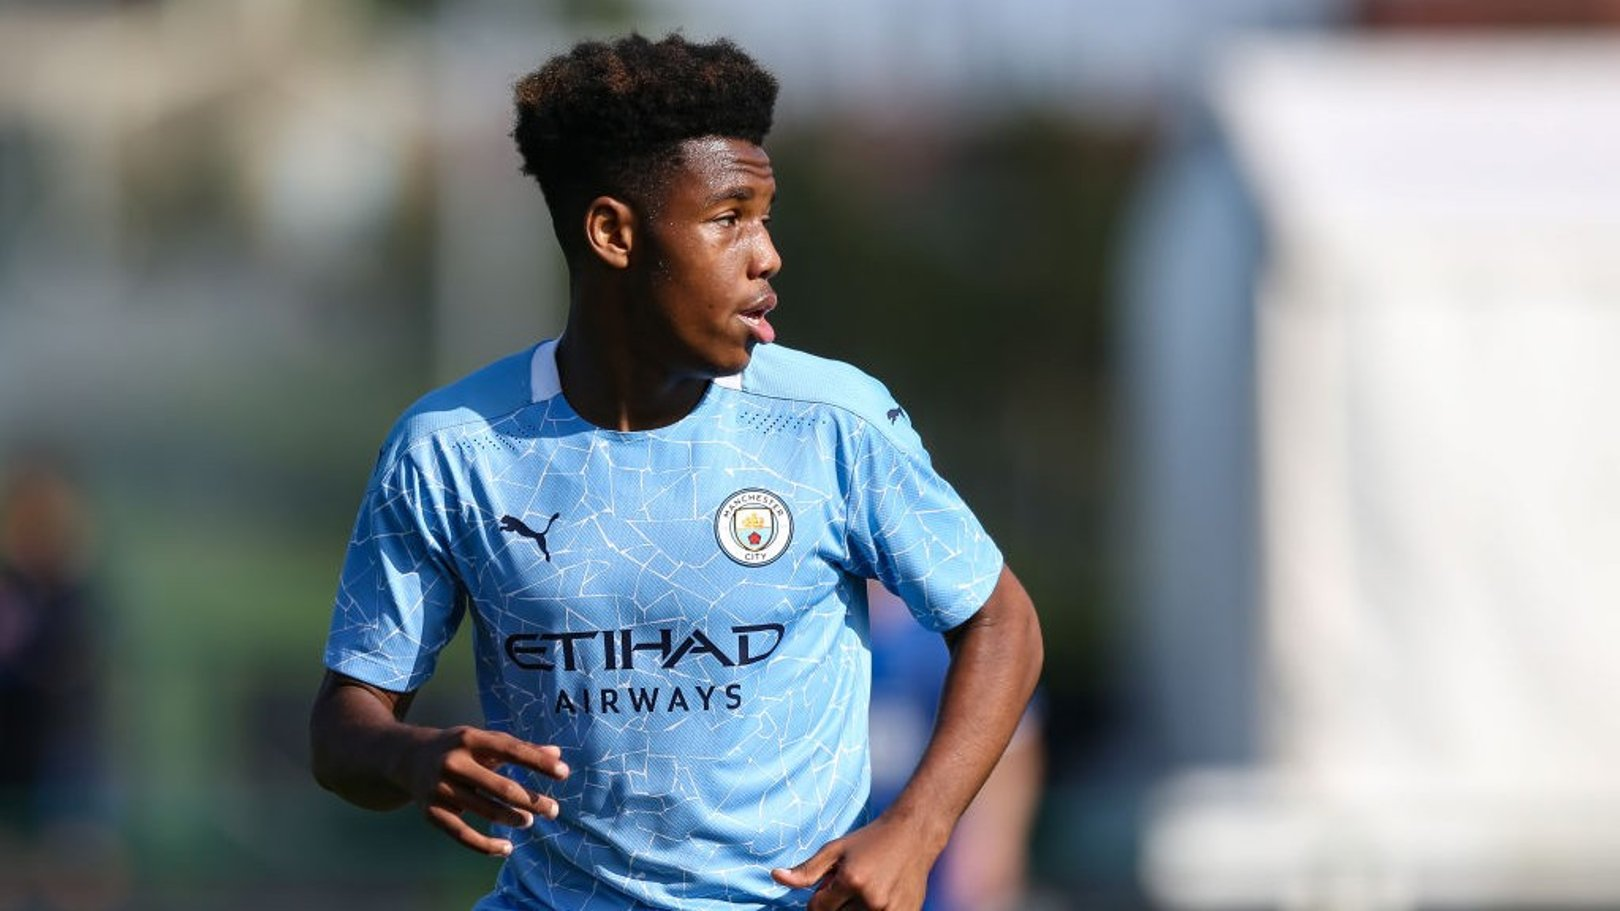 Under-18s see off Blackburn to stay in title hunt